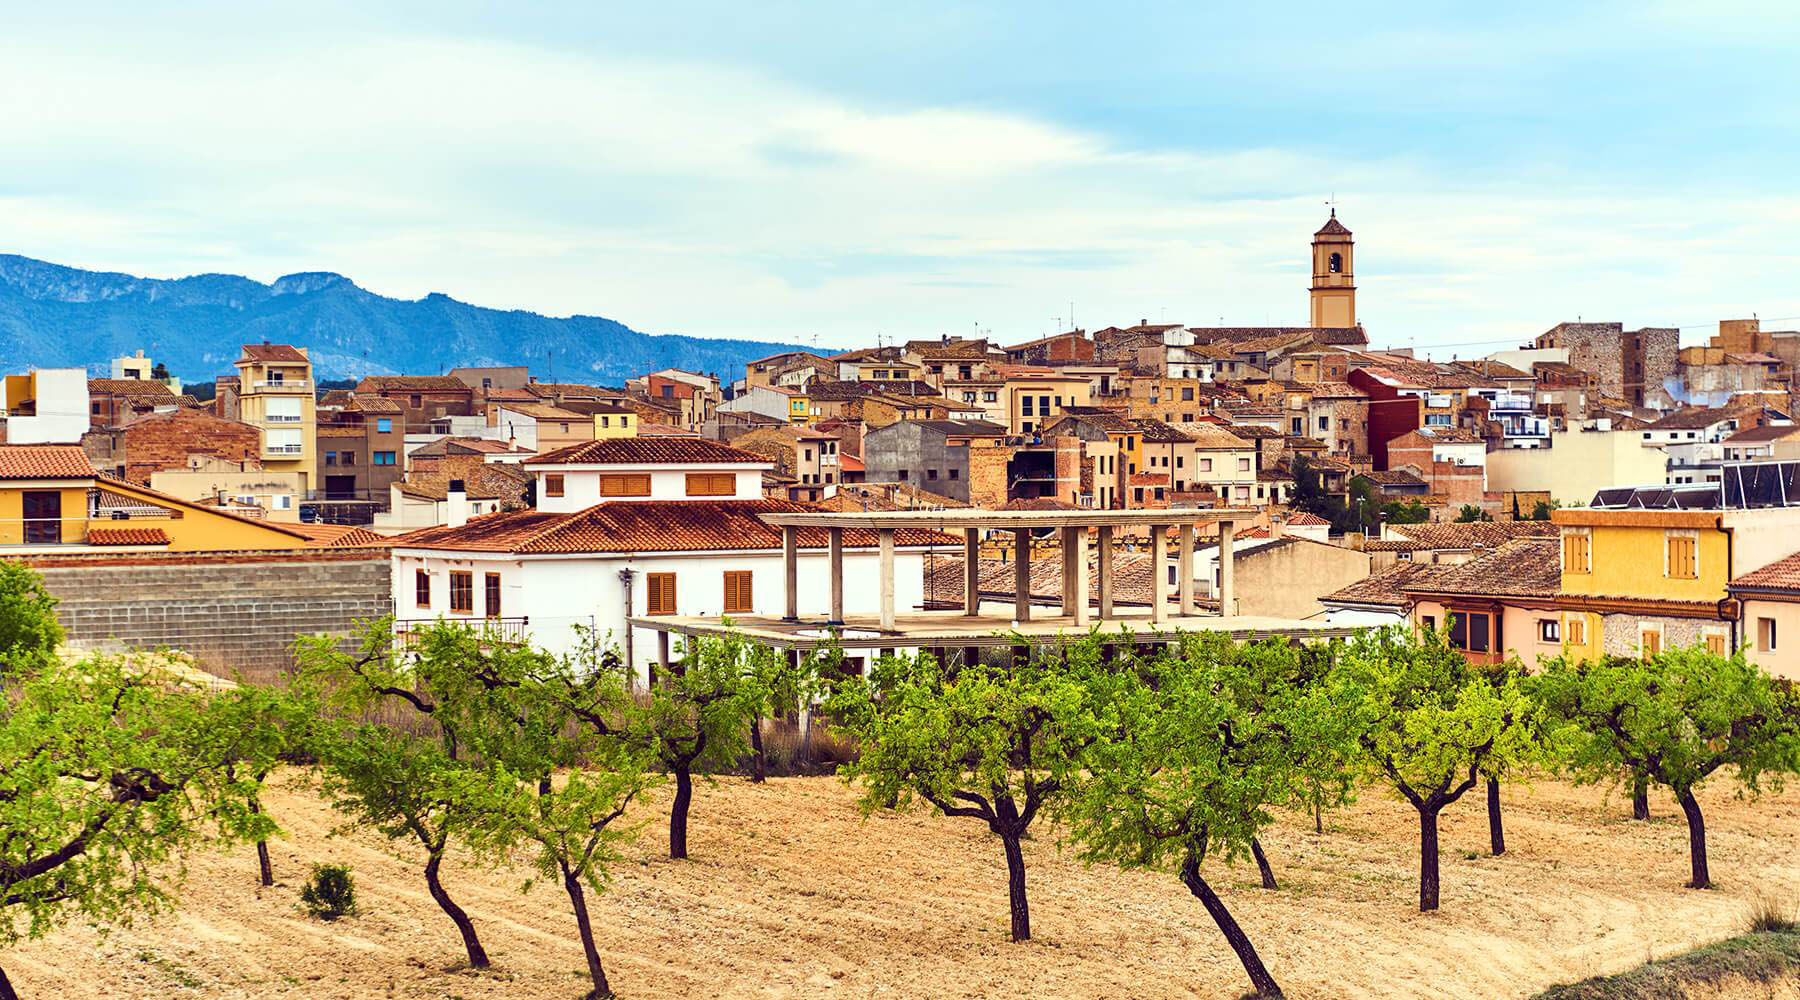 7 NIGHT TUSCANY TO SPAIN VOYAGE